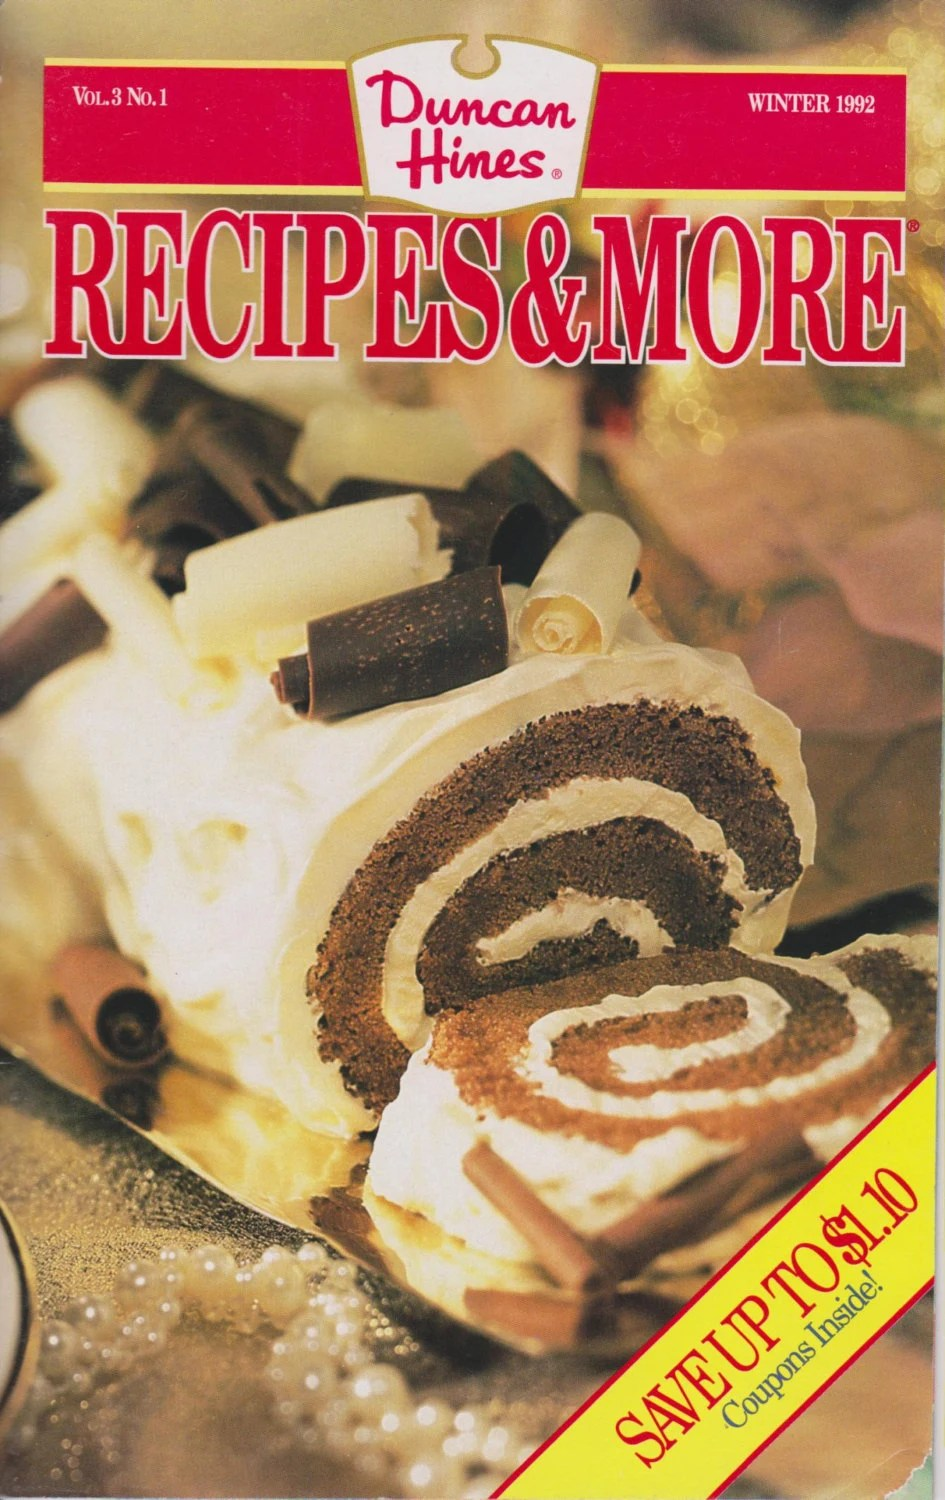 Ideal Duncan Hines Recipes More Winter Cooking Duncan Hines Recipes Applesauce Spice Cake Duncan Hines Recipes Cake Mix nice food Duncan Hines Recipes